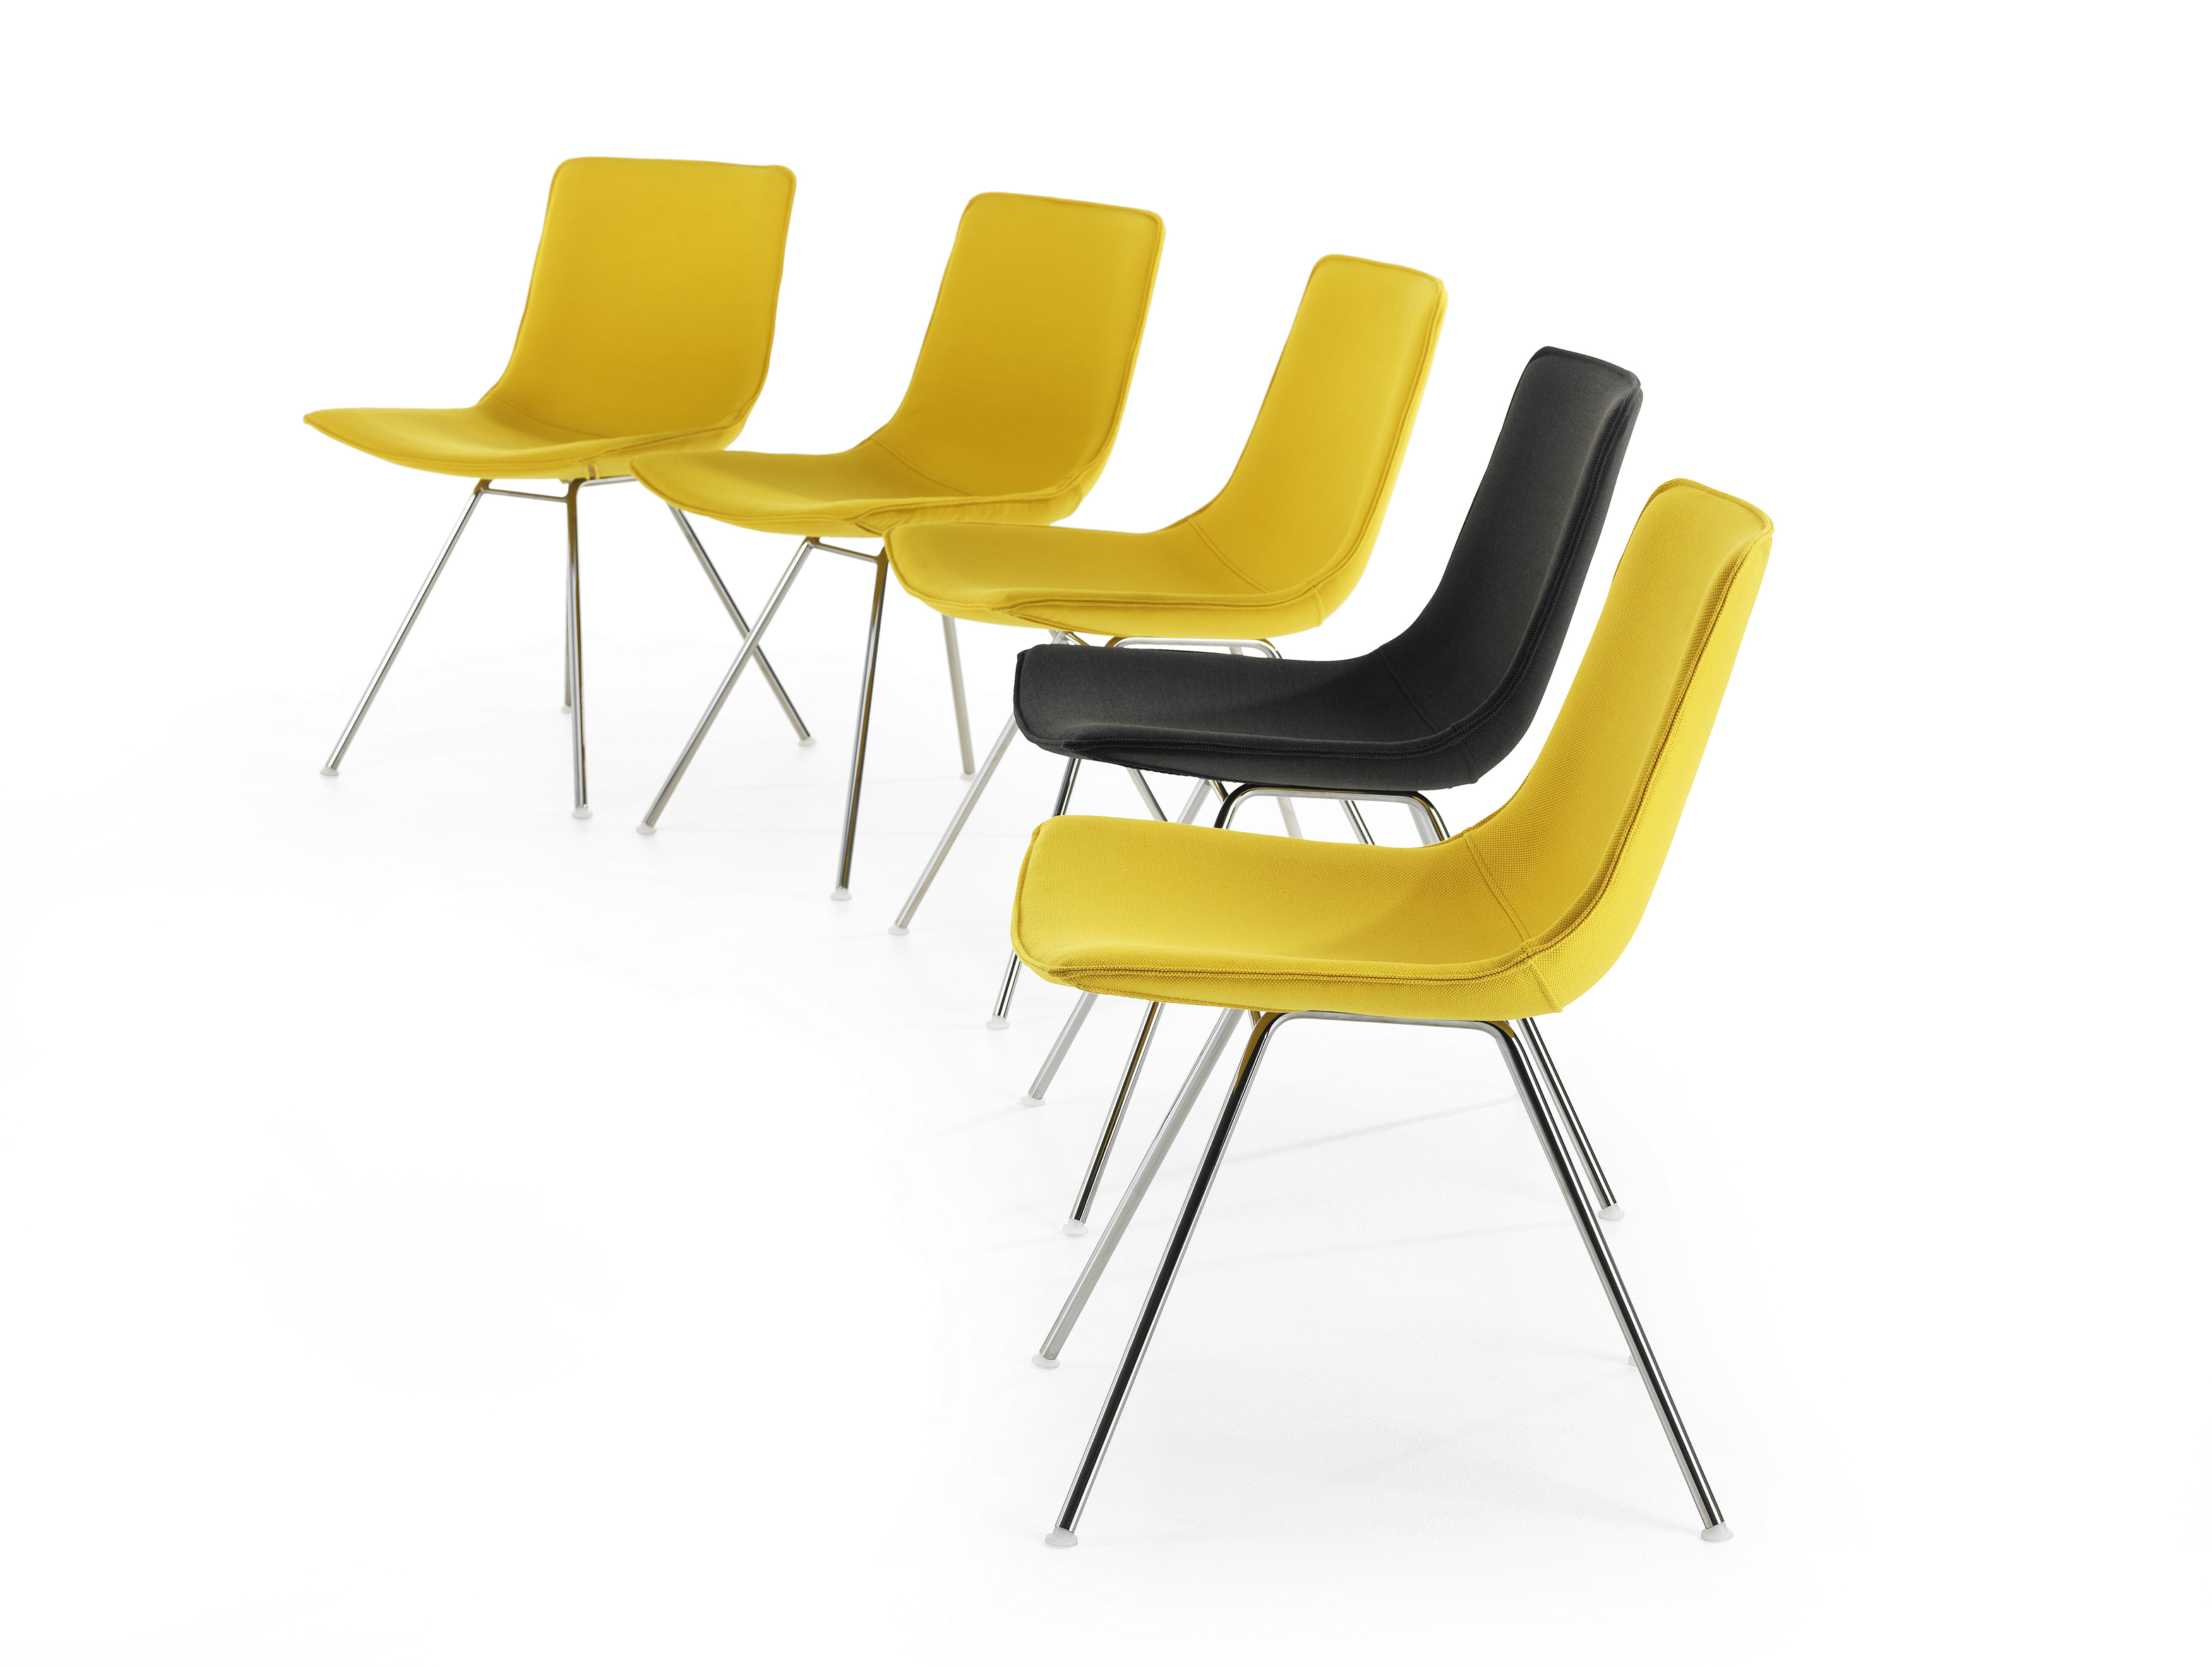 Comet Sport chair armchair u2013 Lammhults Scandinavian Design